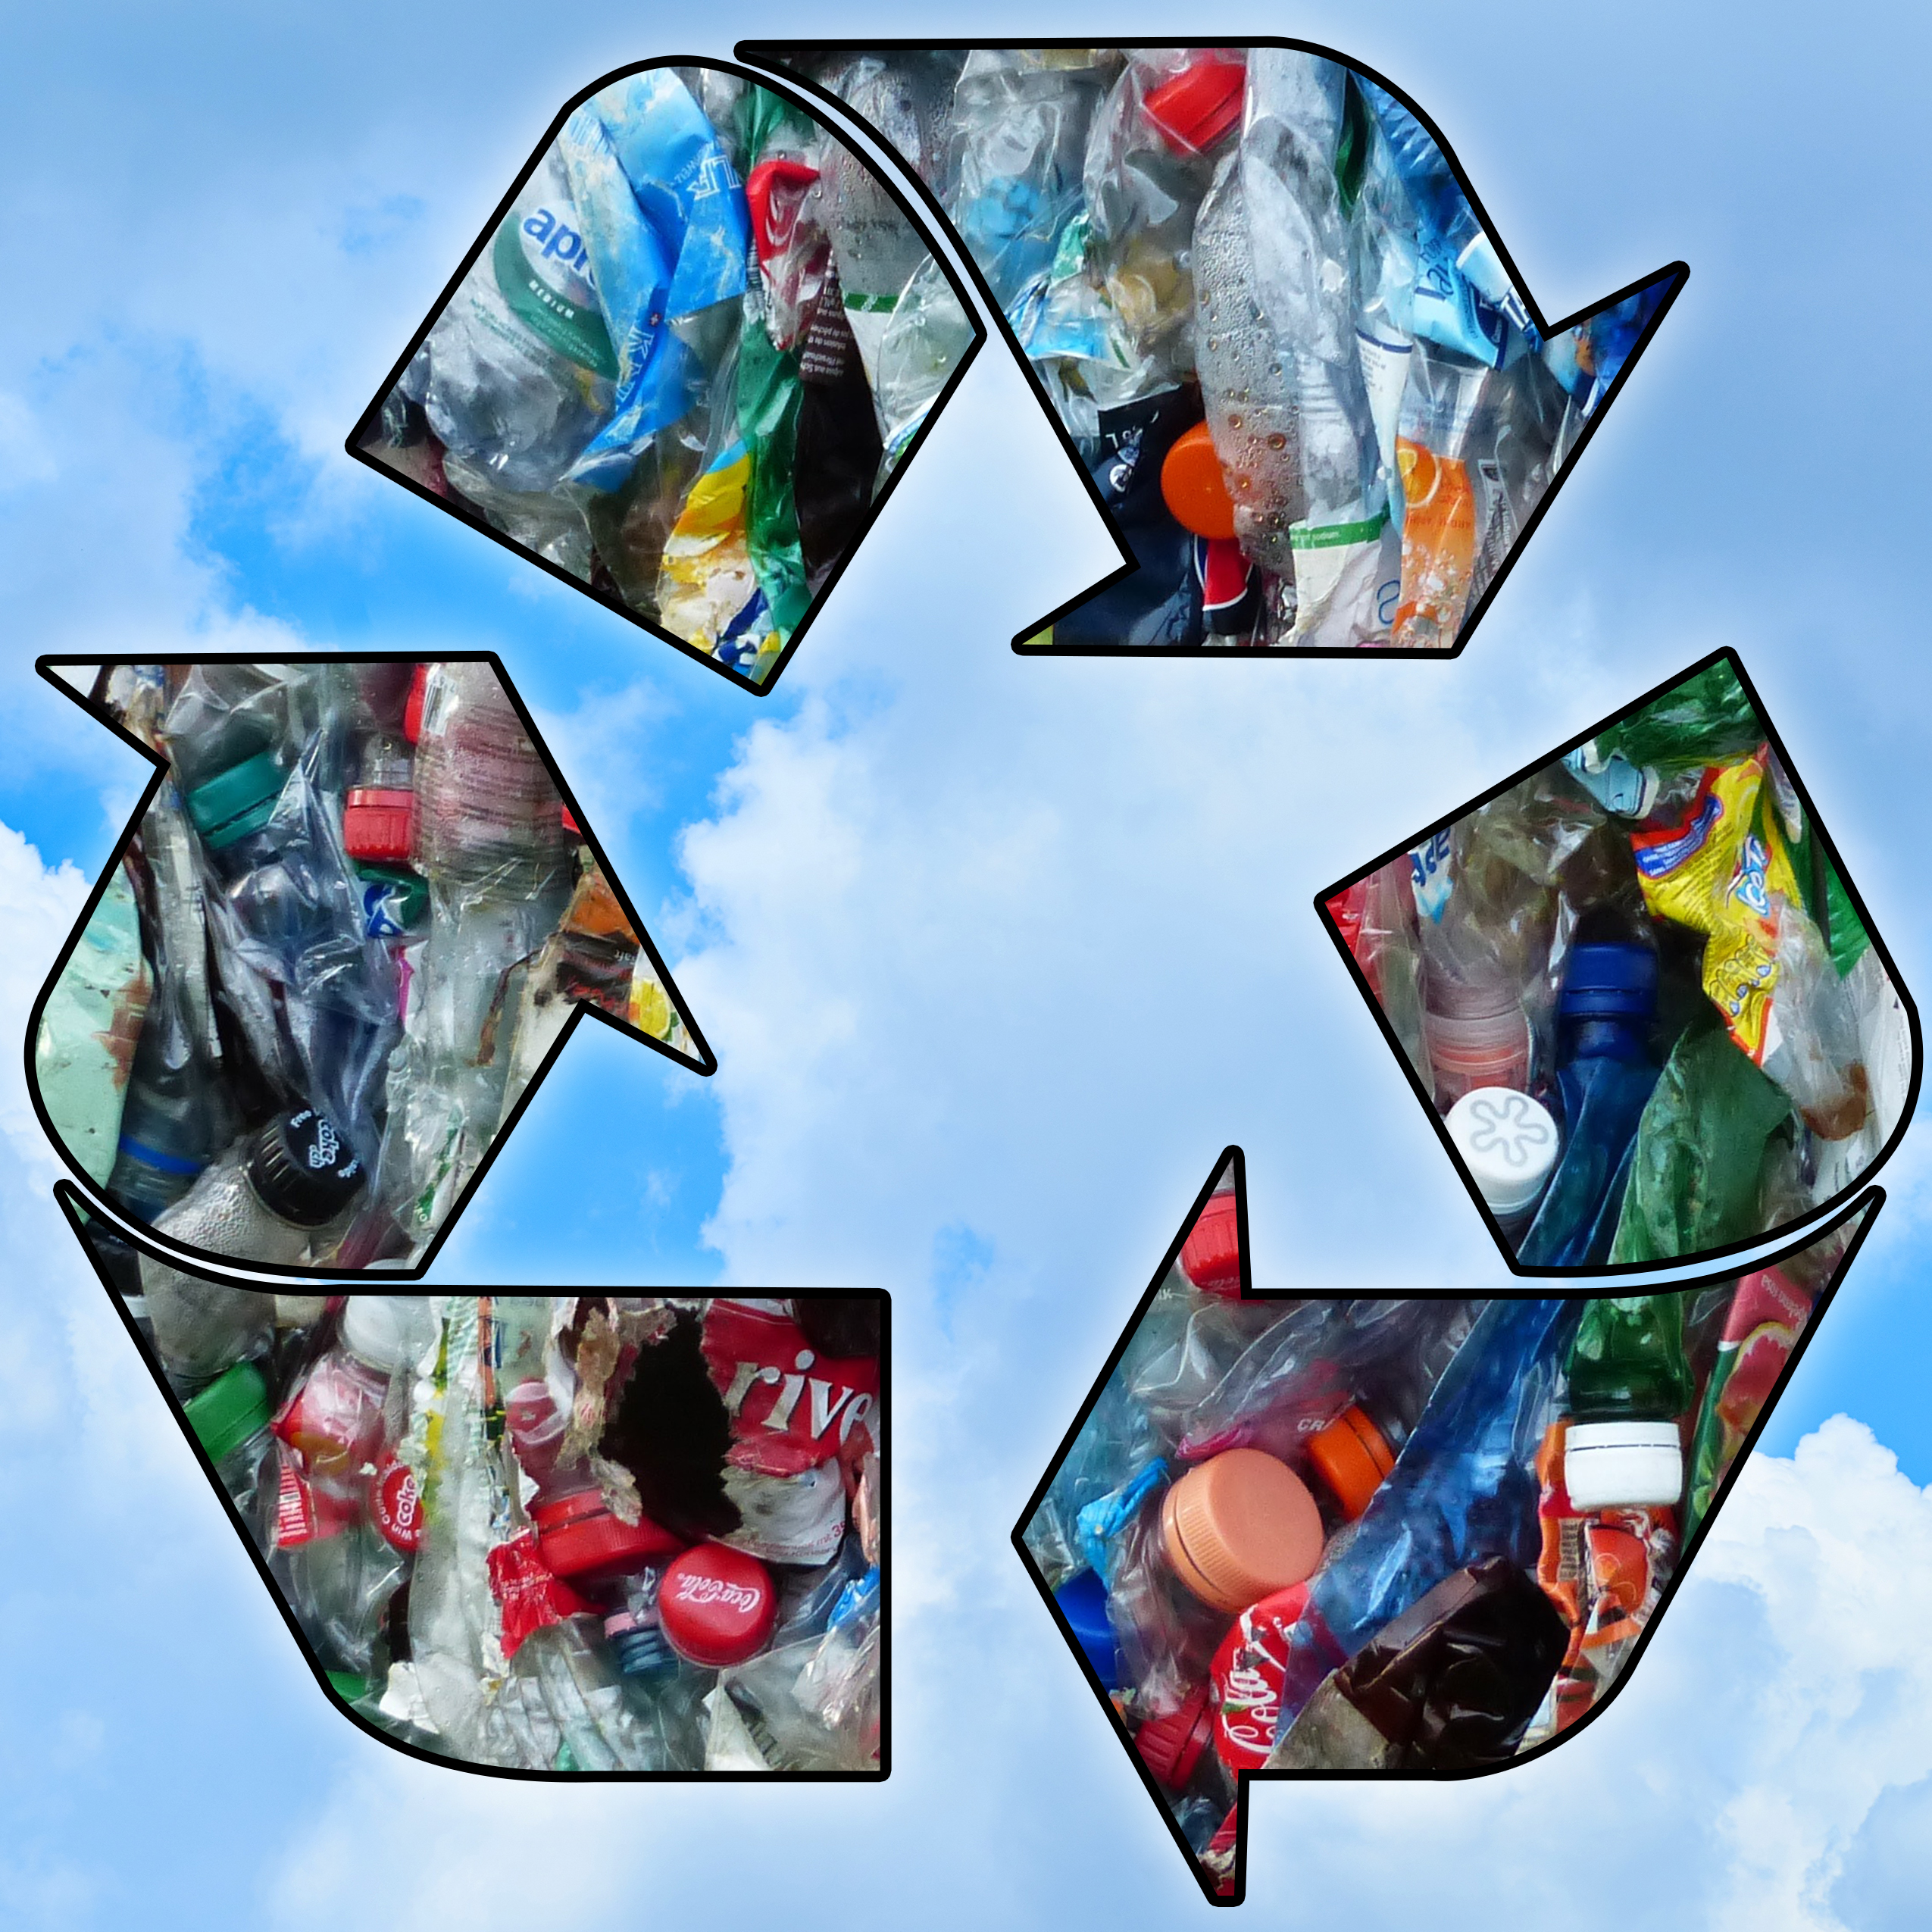 Five Reasons the Recycling Industry Is Still Worthwhile